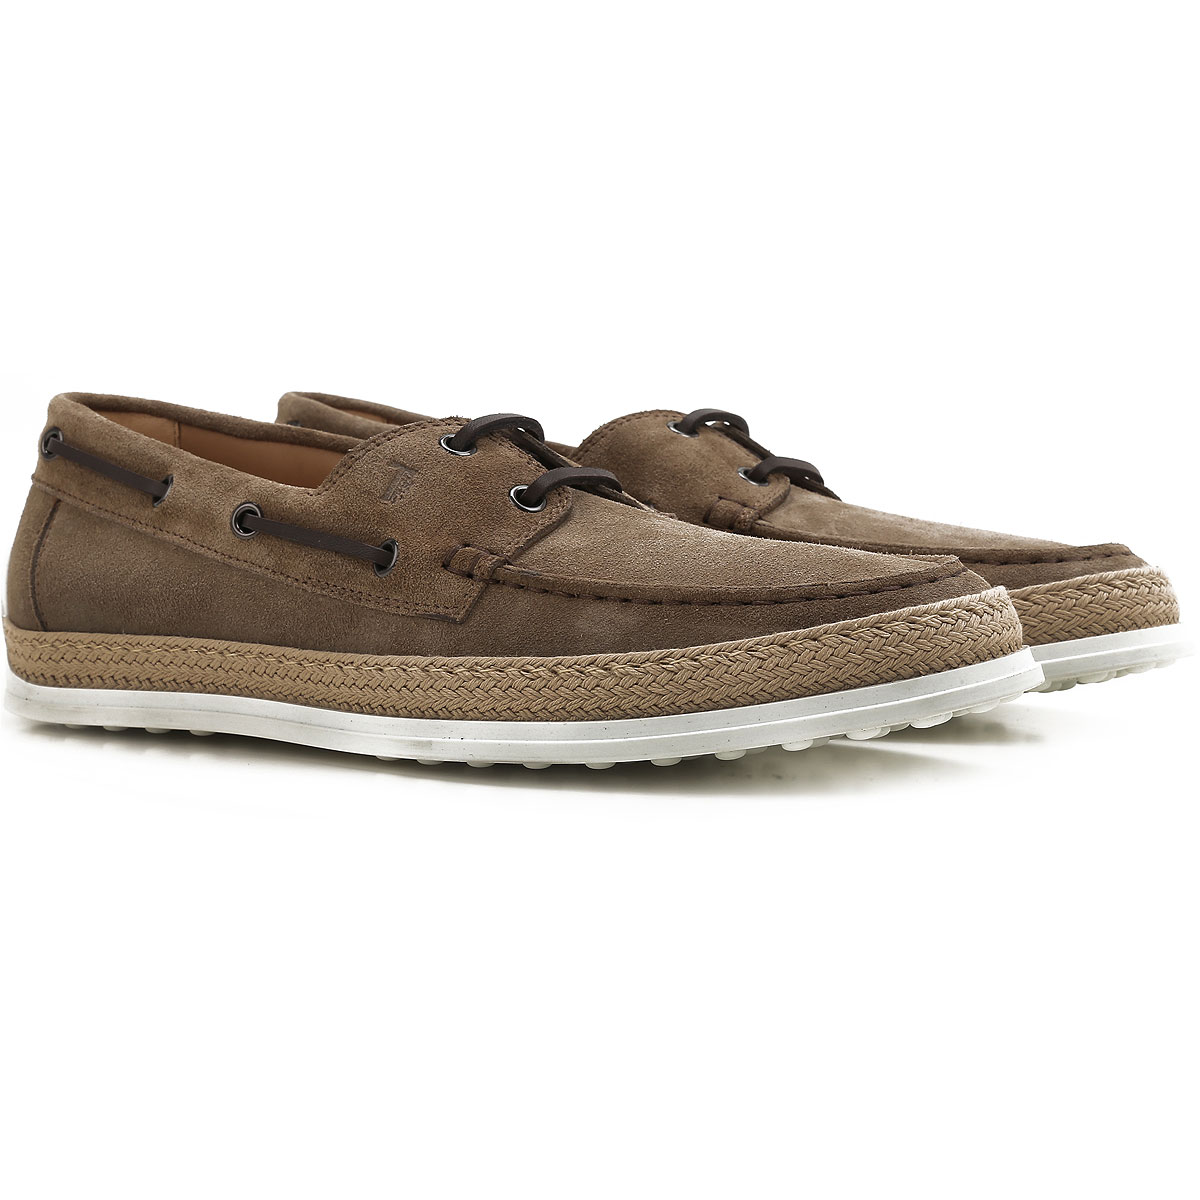 Image of Tods Boat Shoes for Men, Deck Shoes On Sale, Taupe, suede, 2017, 10 11 7 7.5 8